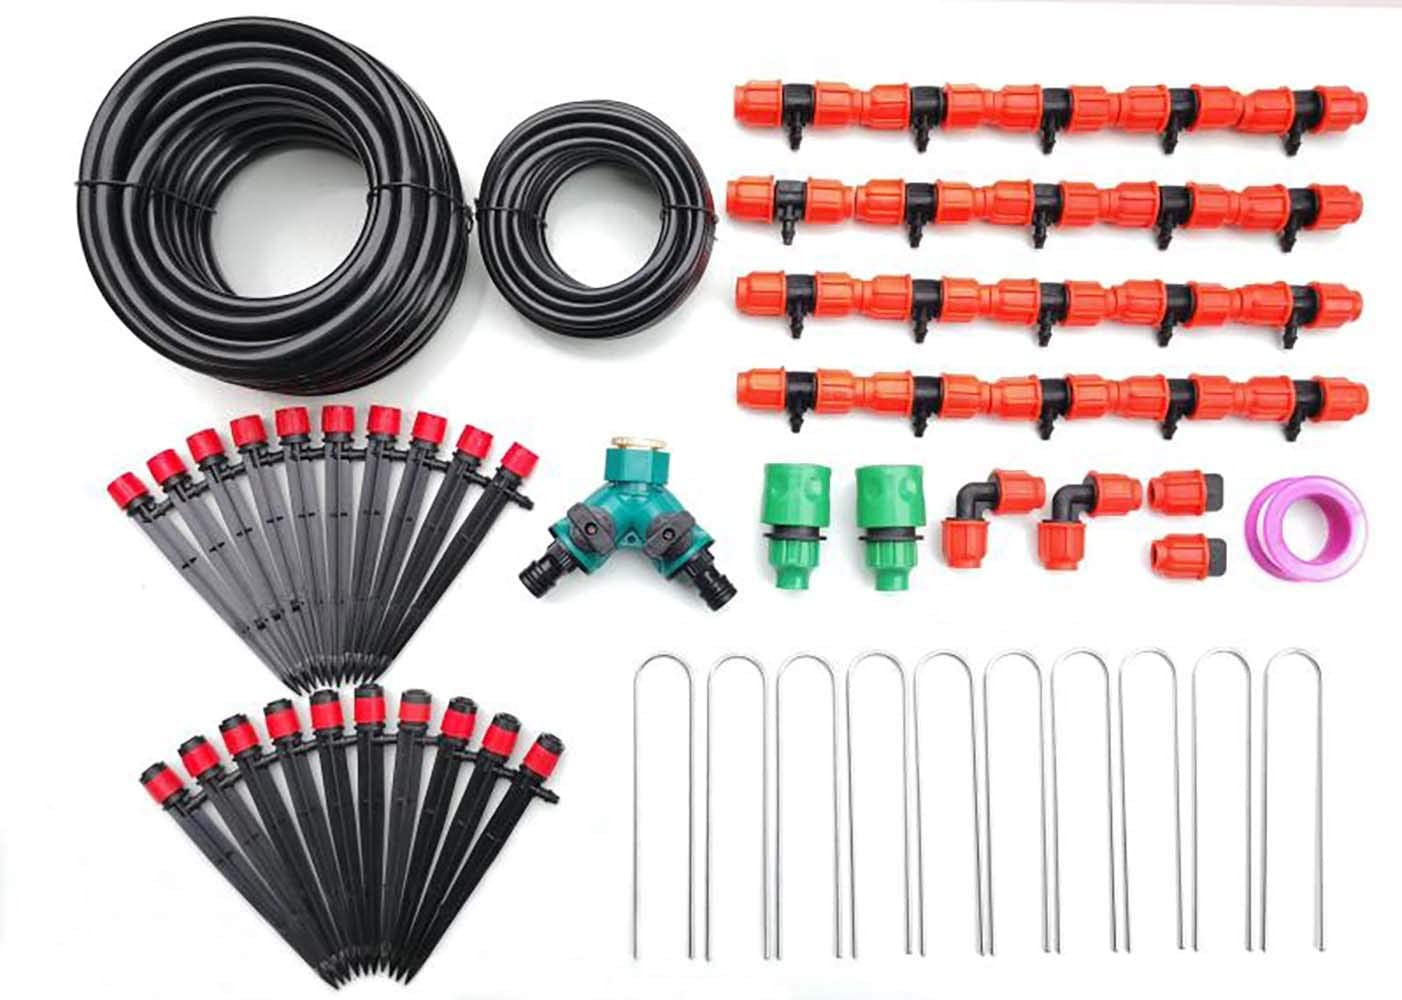 """ZILIM Drip Irrigation Kit/DIY Saving Water Automatic Irrigation Equipment Set, Durable 1/2"""" Main Tubing & 1/4"""" Branch Tubing Hose 33 FT Each, Equipment For Garden Greenhouse, Flower Bed,Patio,Lawn"""